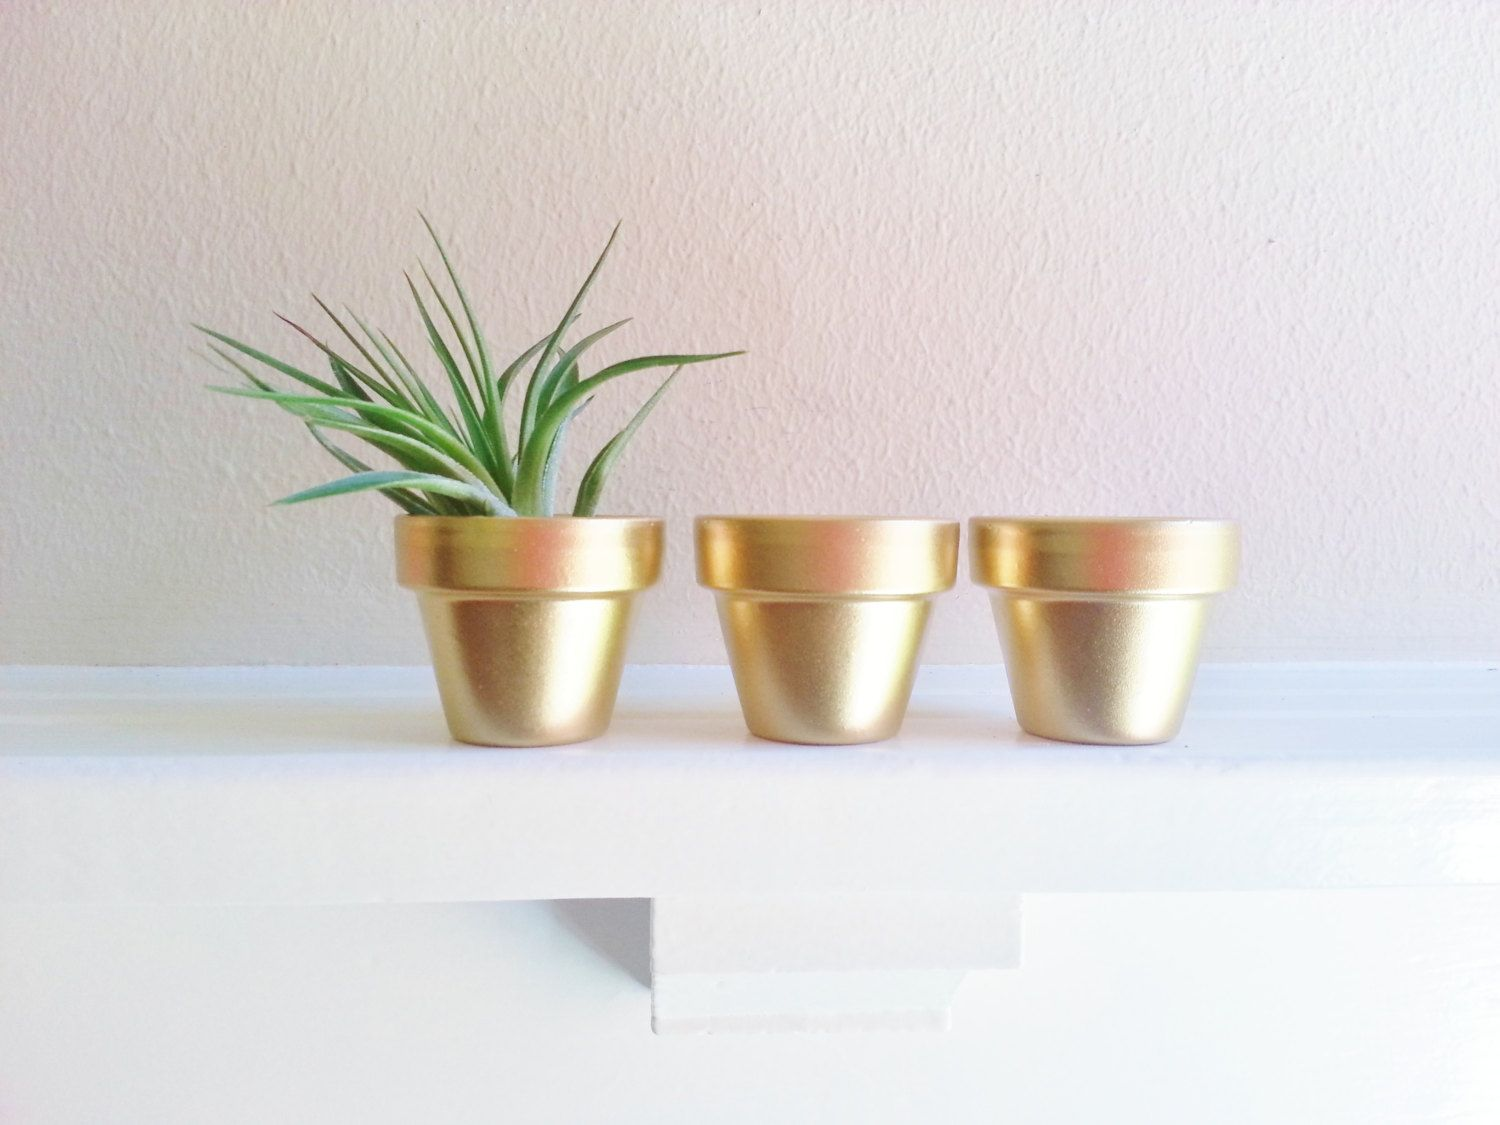 Herb Planter Pot Gold Mini Planters Herb Garden Pots Tillandsia Planter